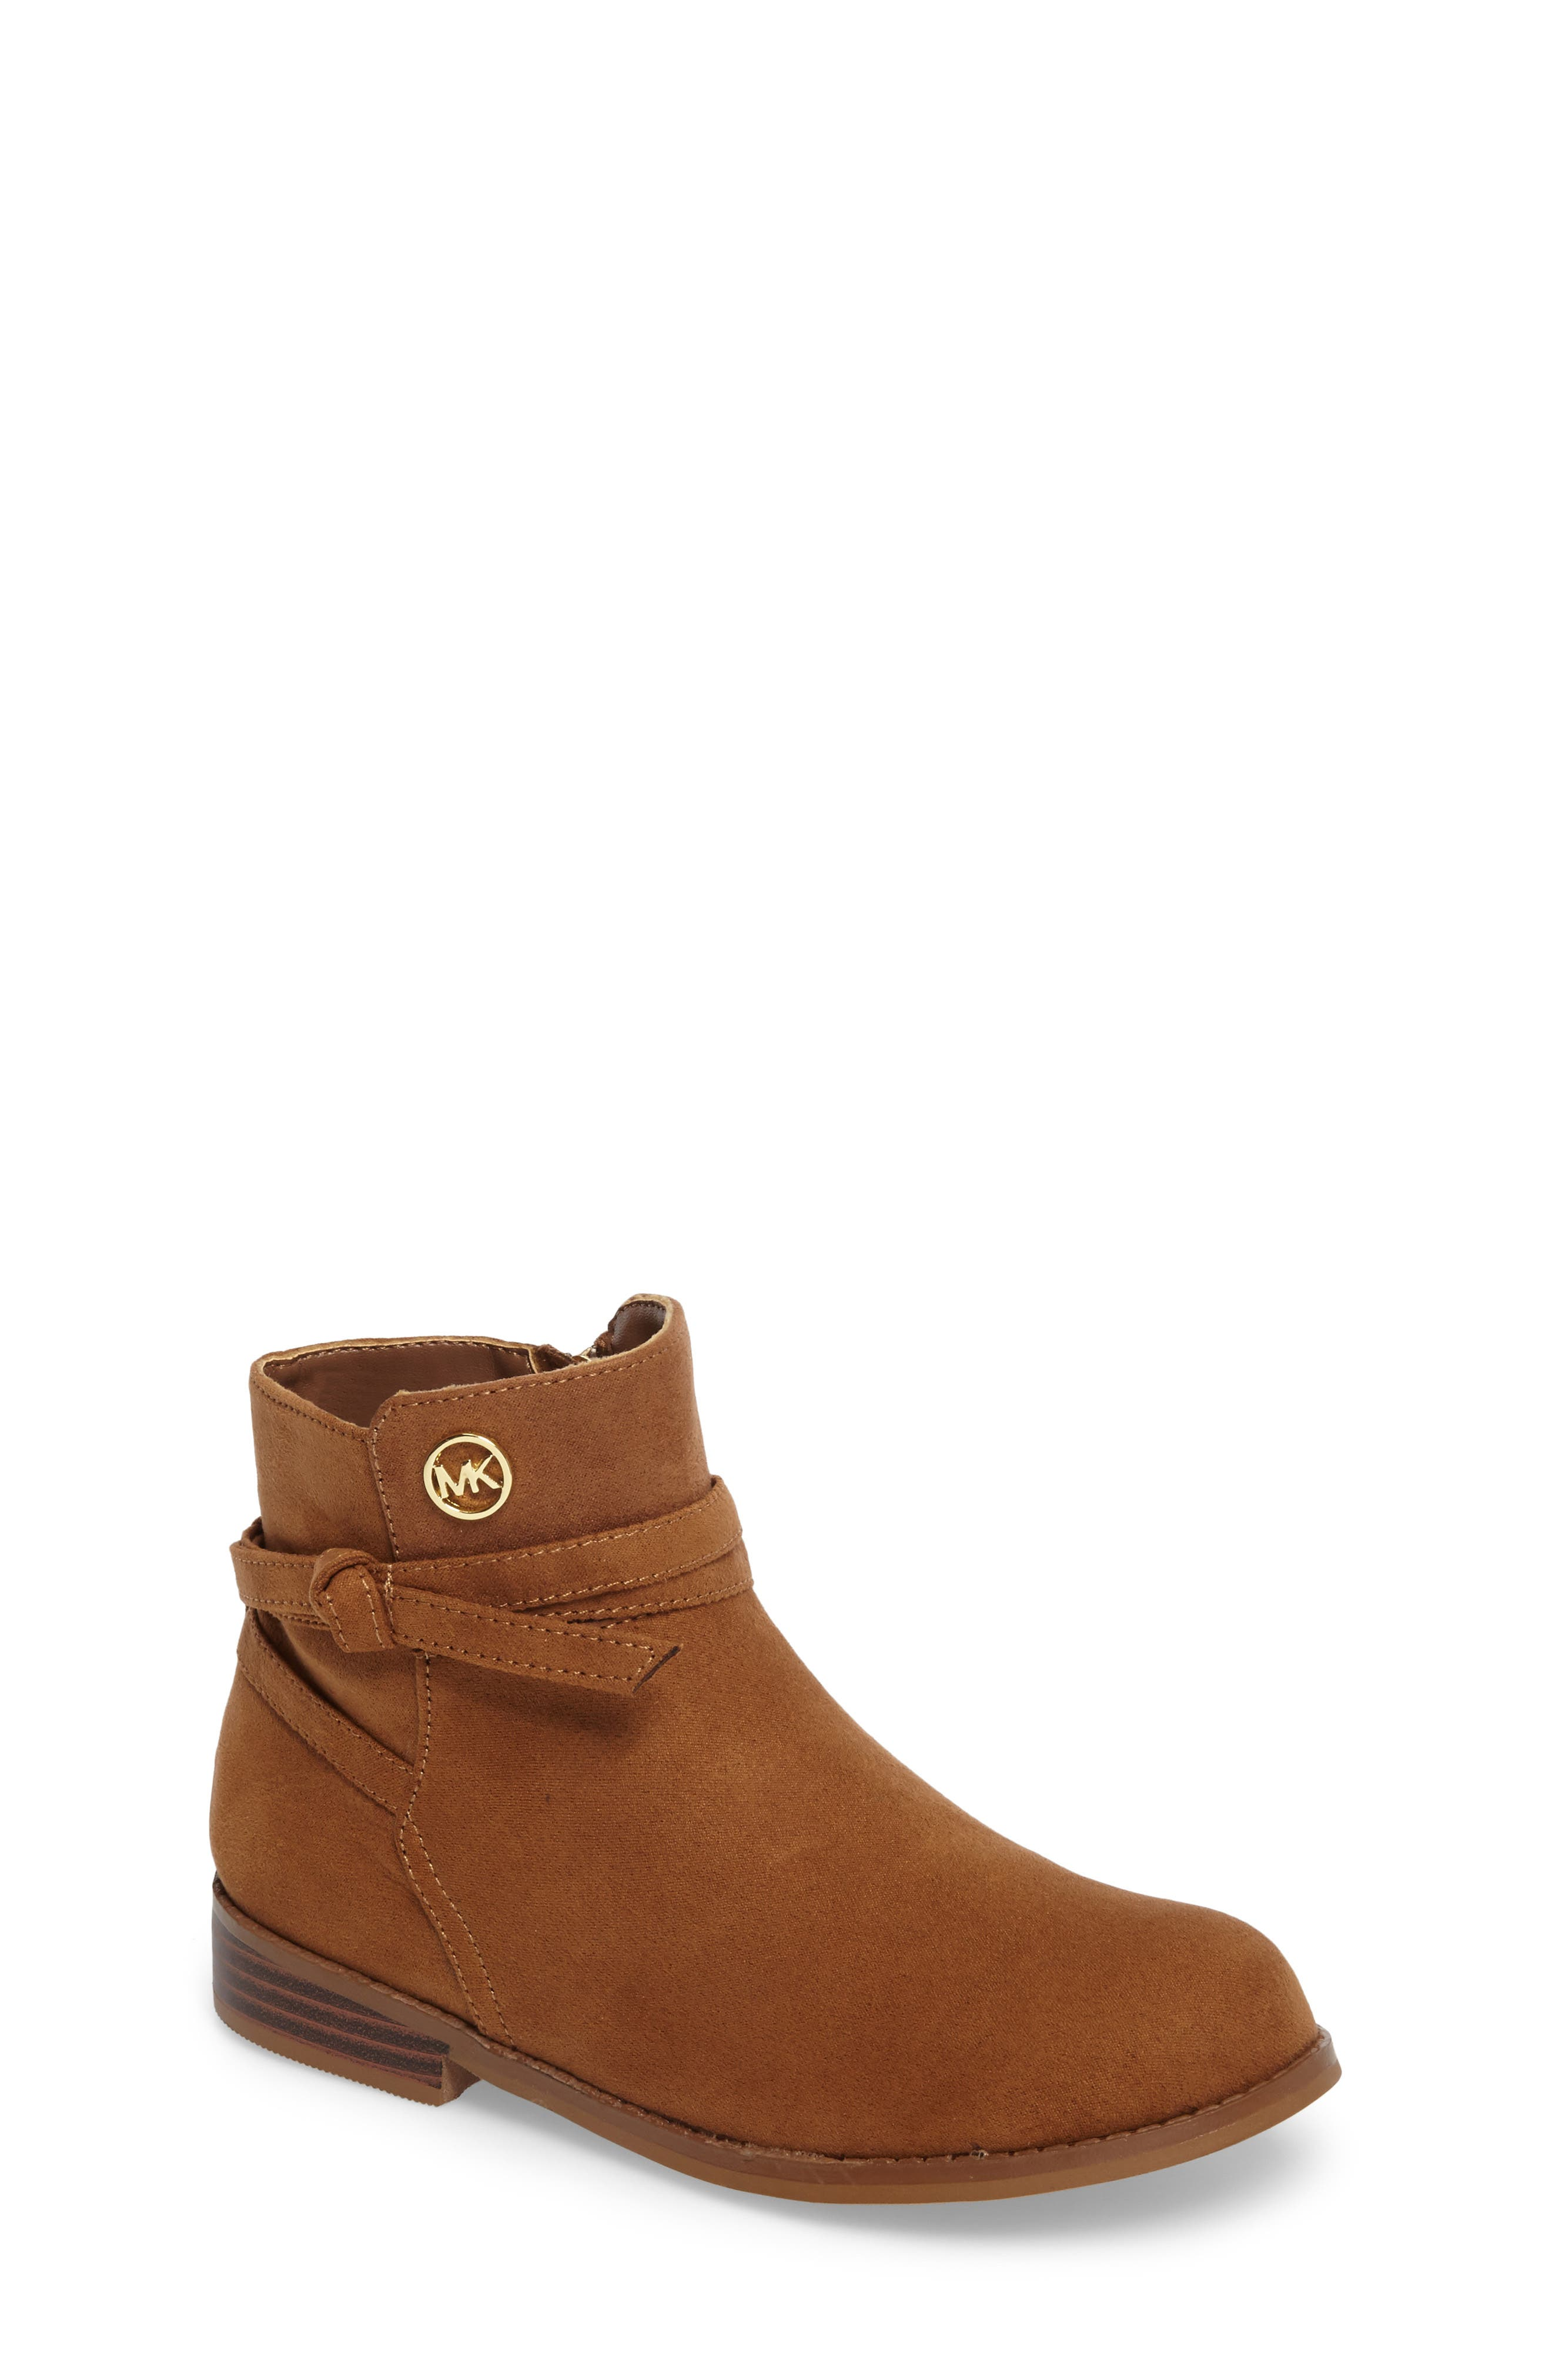 Emma Carmen Knotted Bootie,                         Main,                         color, 200